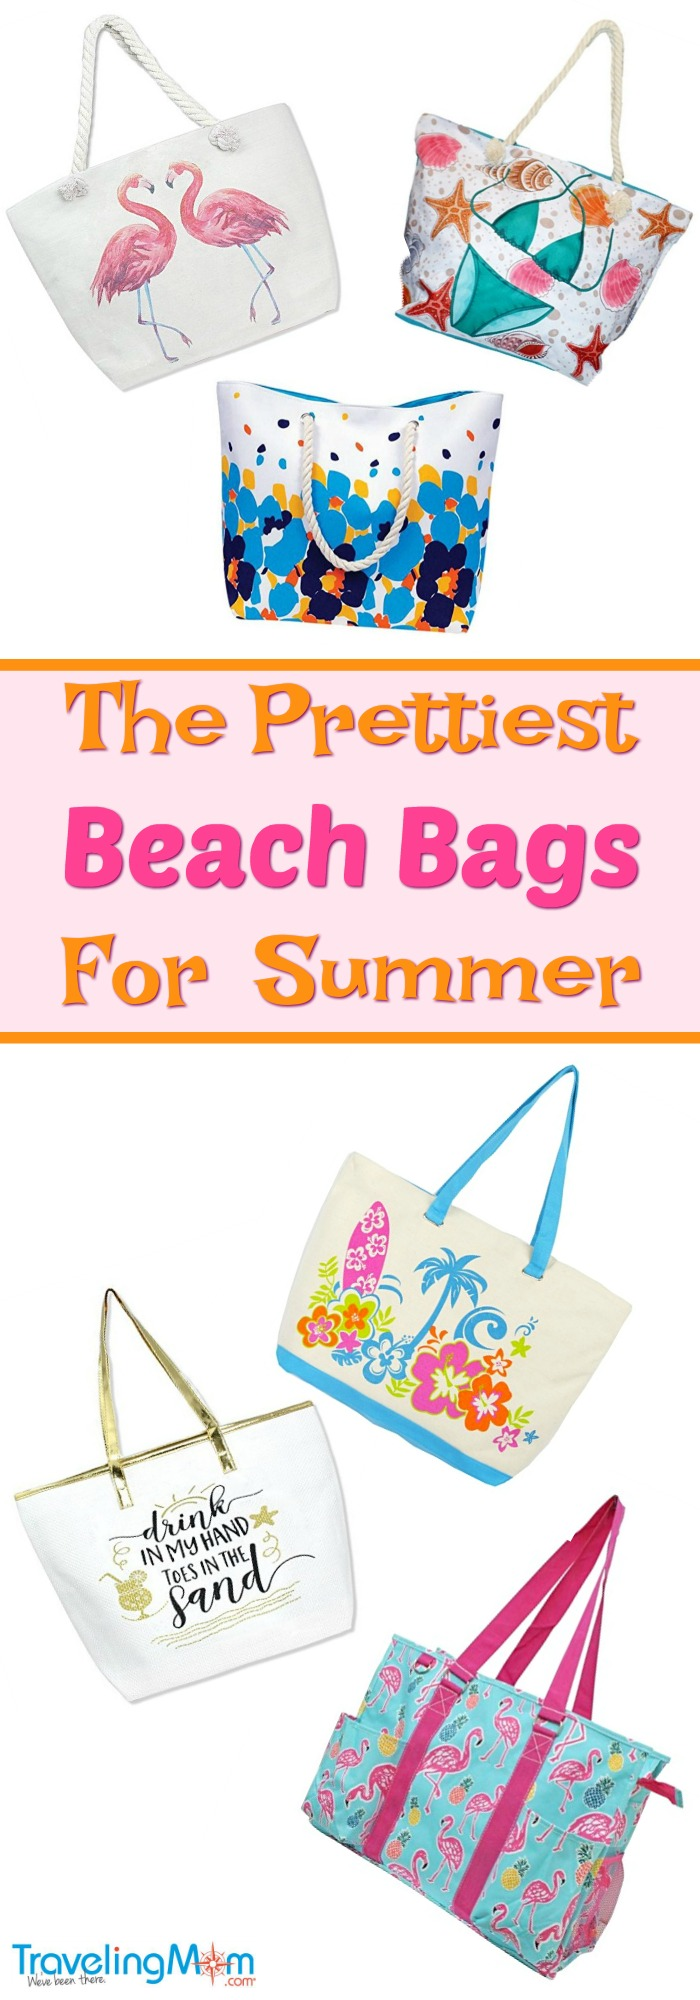 The prettiest beach bags for summer. Photo Credit: Amazon